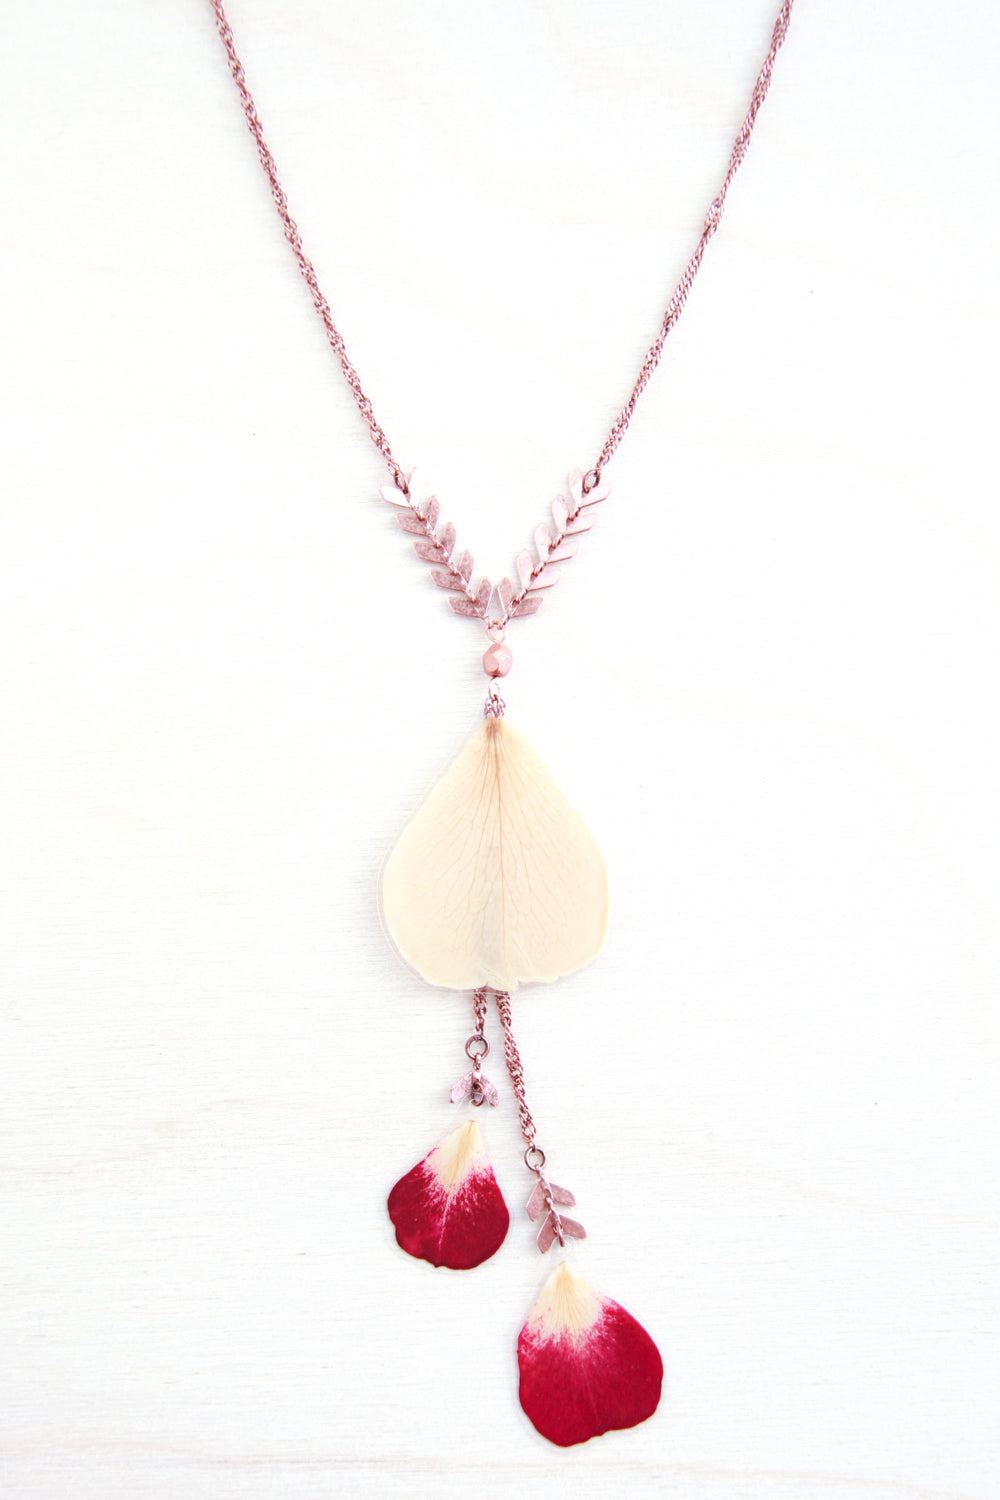 Fuchsia & White Rose Pressed Flower Necklace with Glass Beads